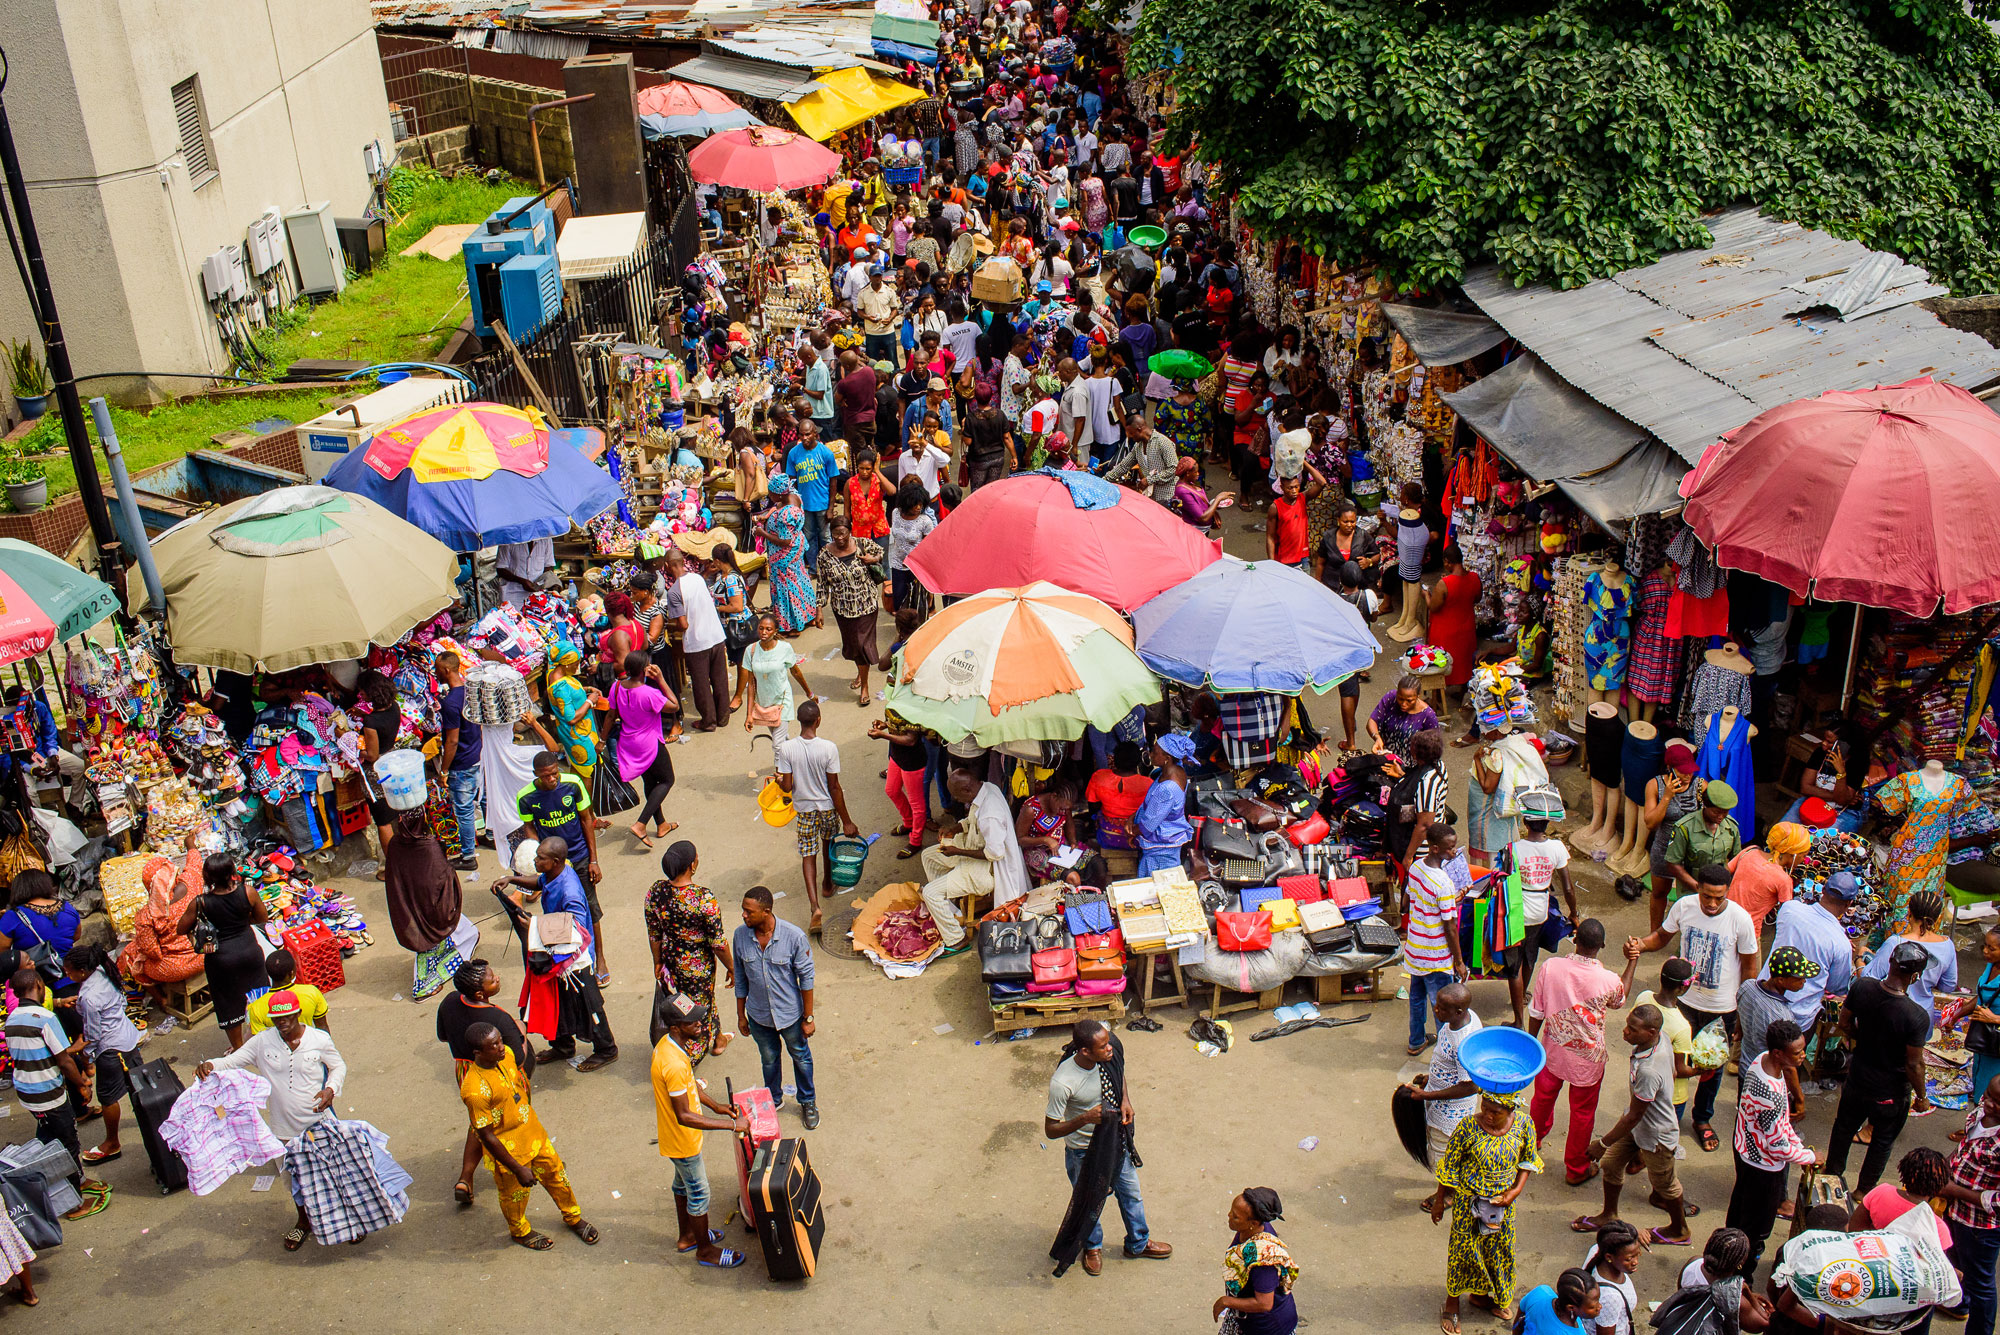 Busy street market with lots of parasols.